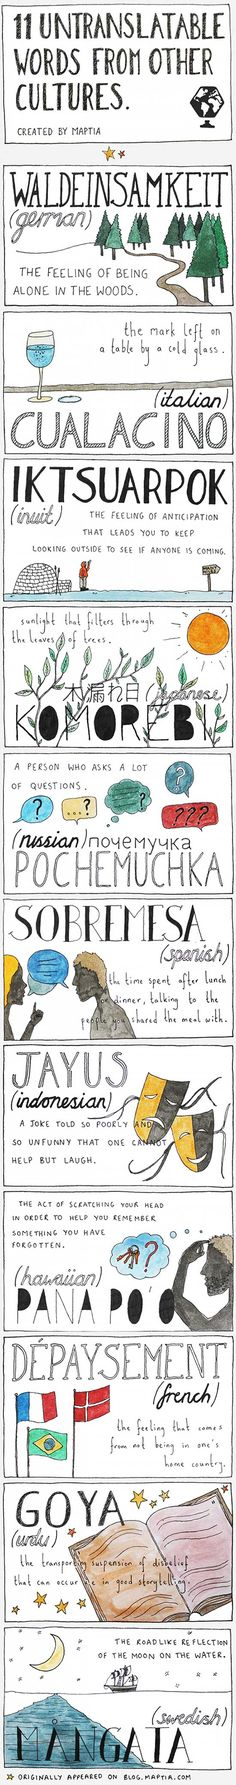 Maptia è una piattaforma di storytelling. L'infografica 11 Untranslatable Words From Other Cultures eslpora il significato delle parole in diverse culture